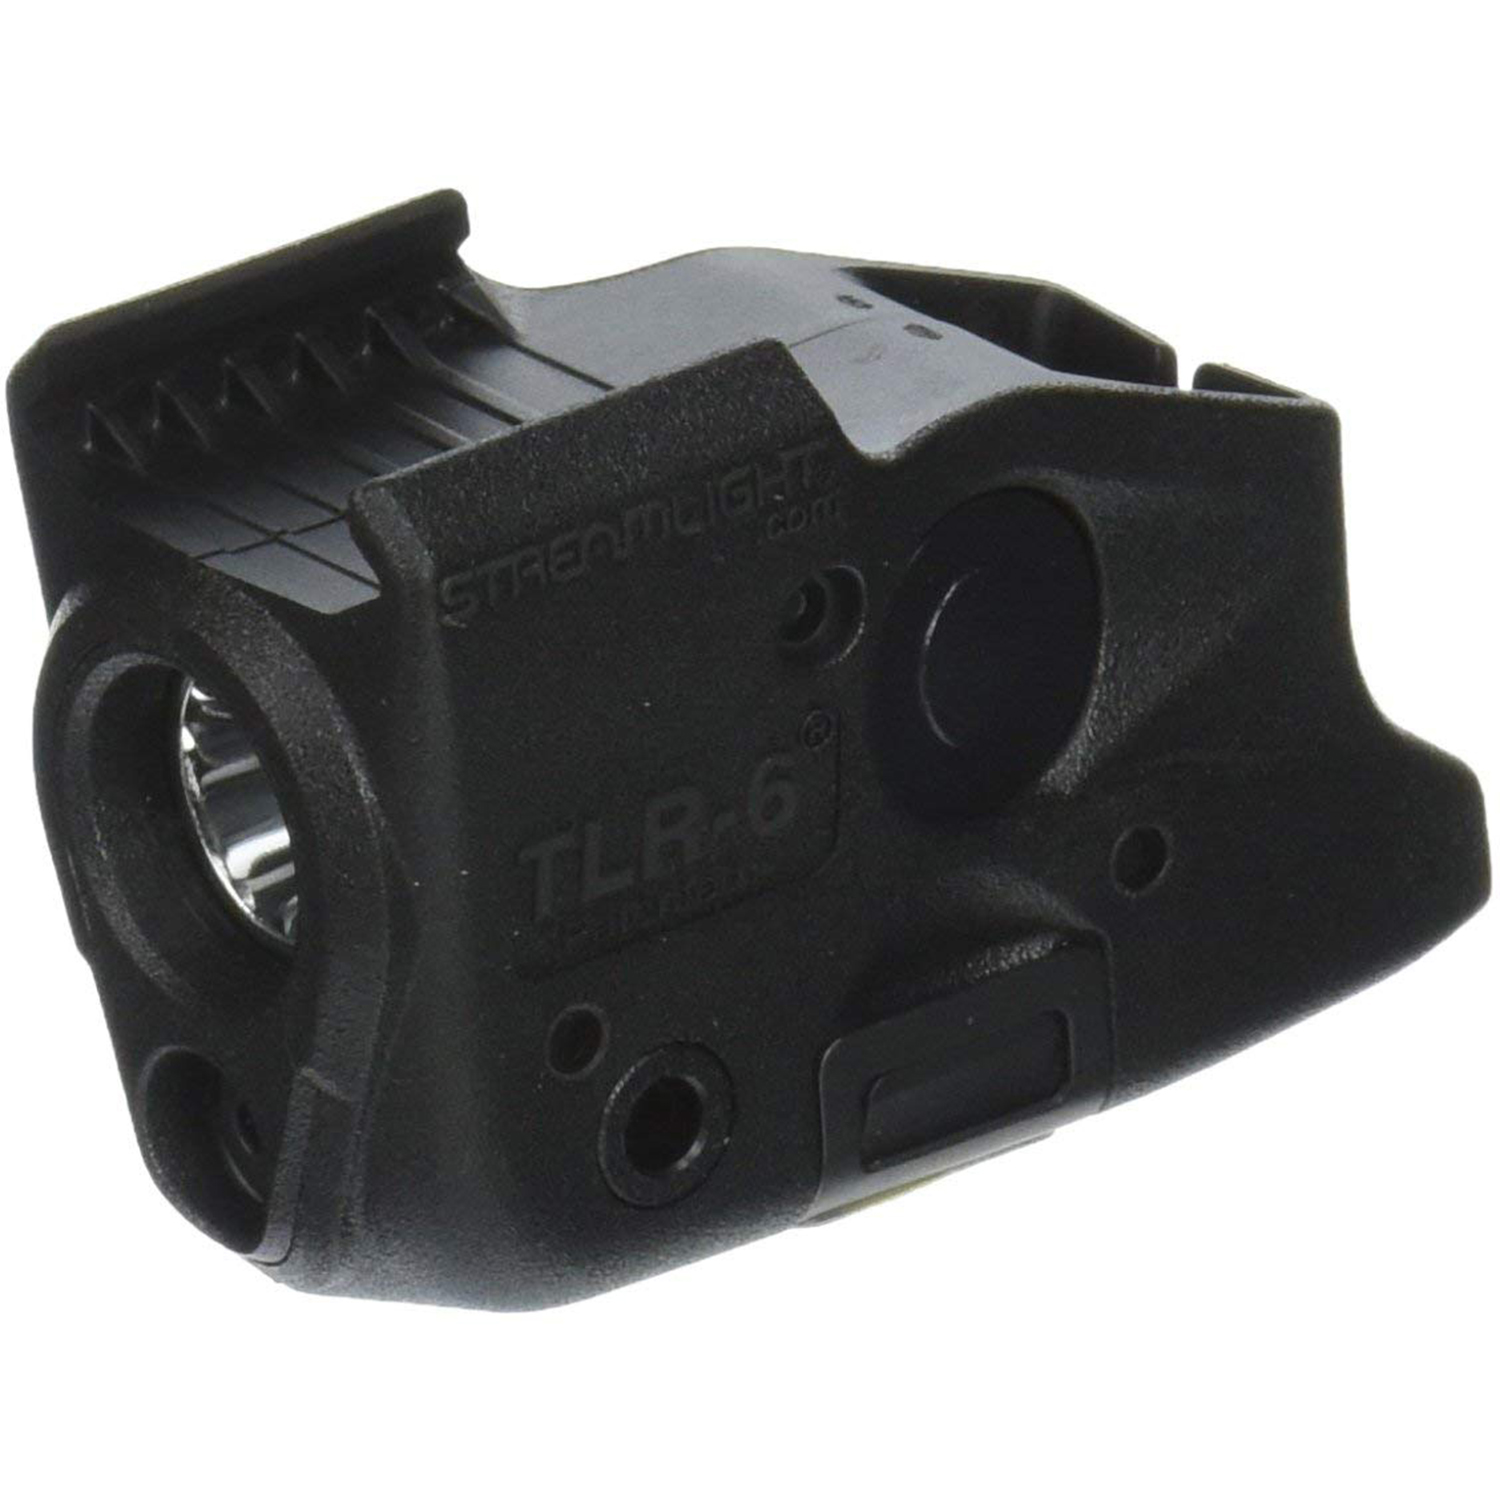 Details about Streamlight TLR-6 Fits Glock 17/22 and 19/23 Black White LED  and Red Laser,